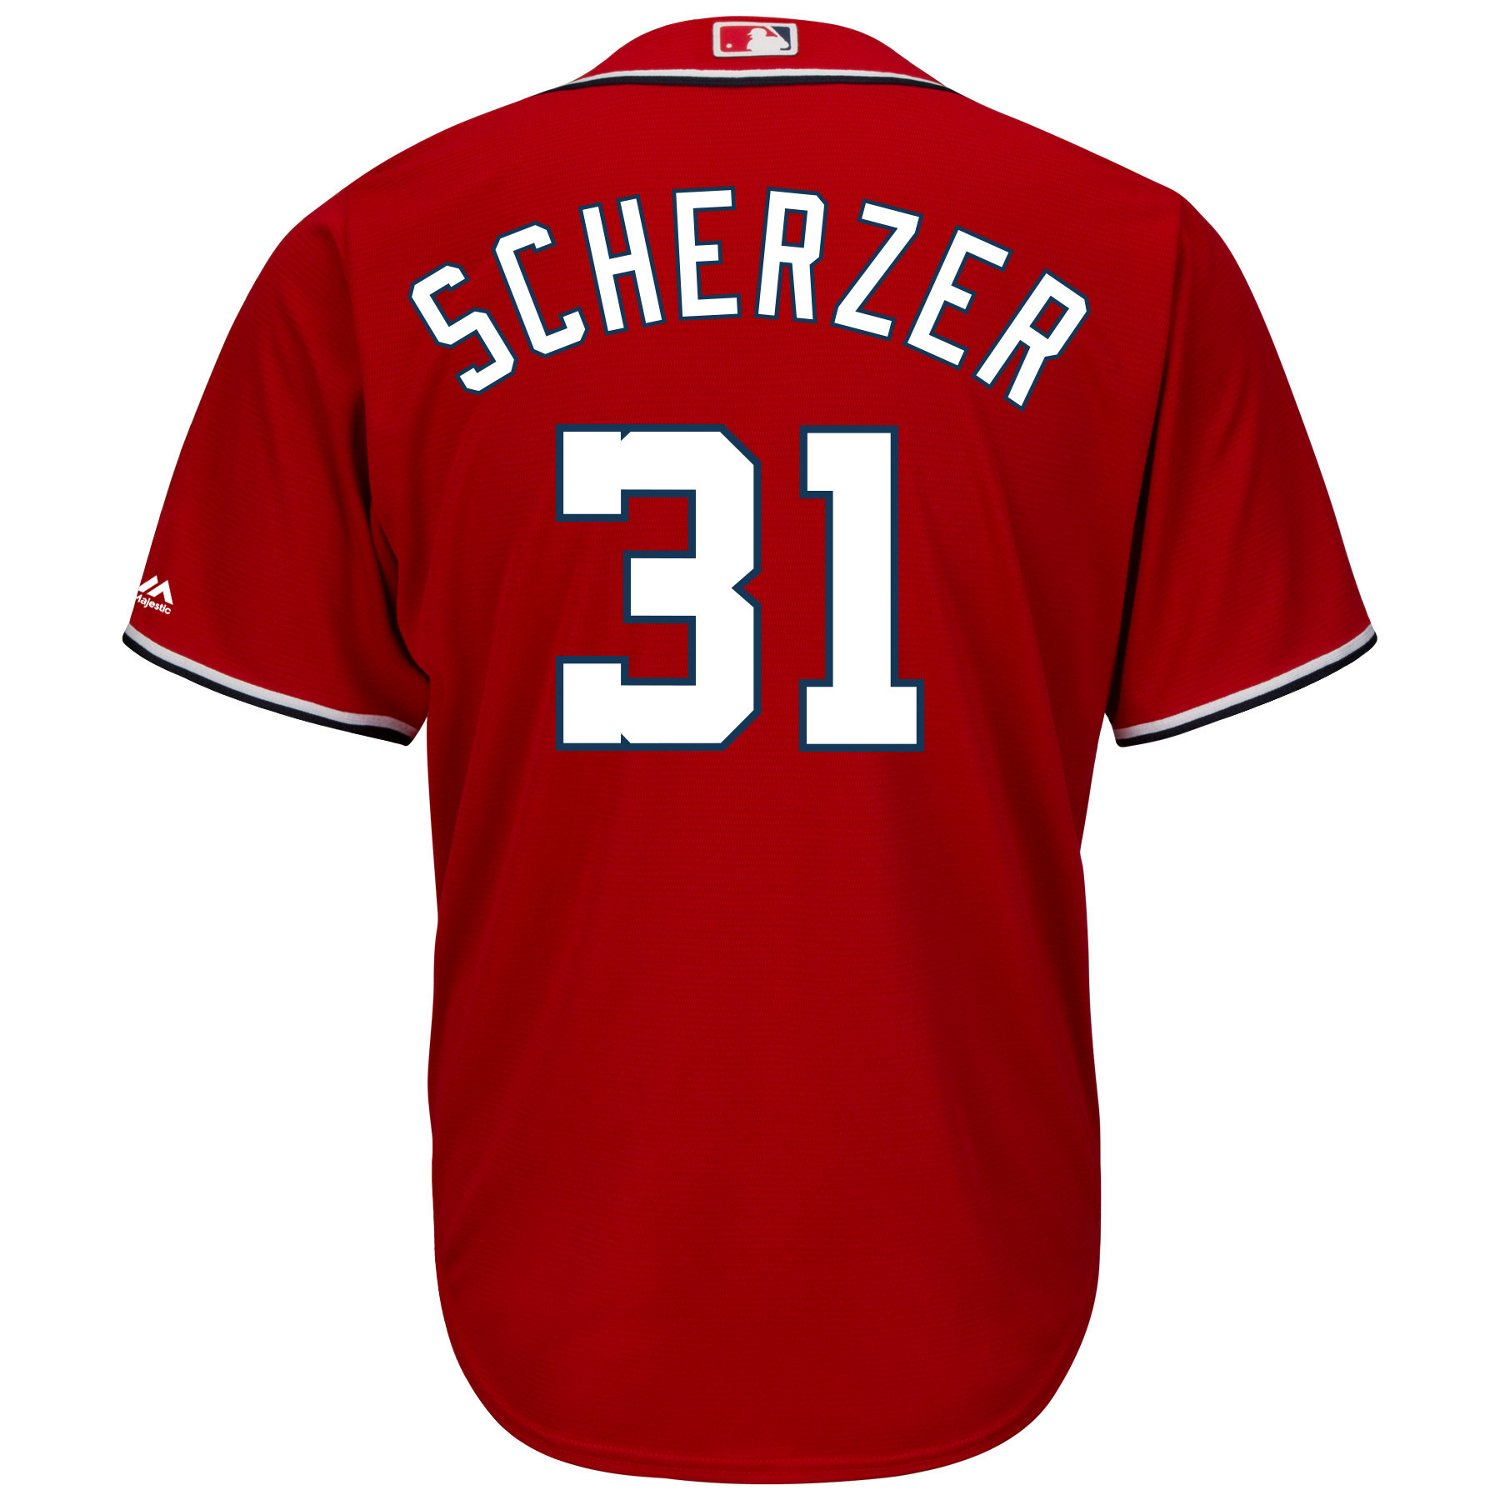 60e38685ad7 Majestic Men s Washington Nationals Max Scherzer  31 Cool Base Jersey